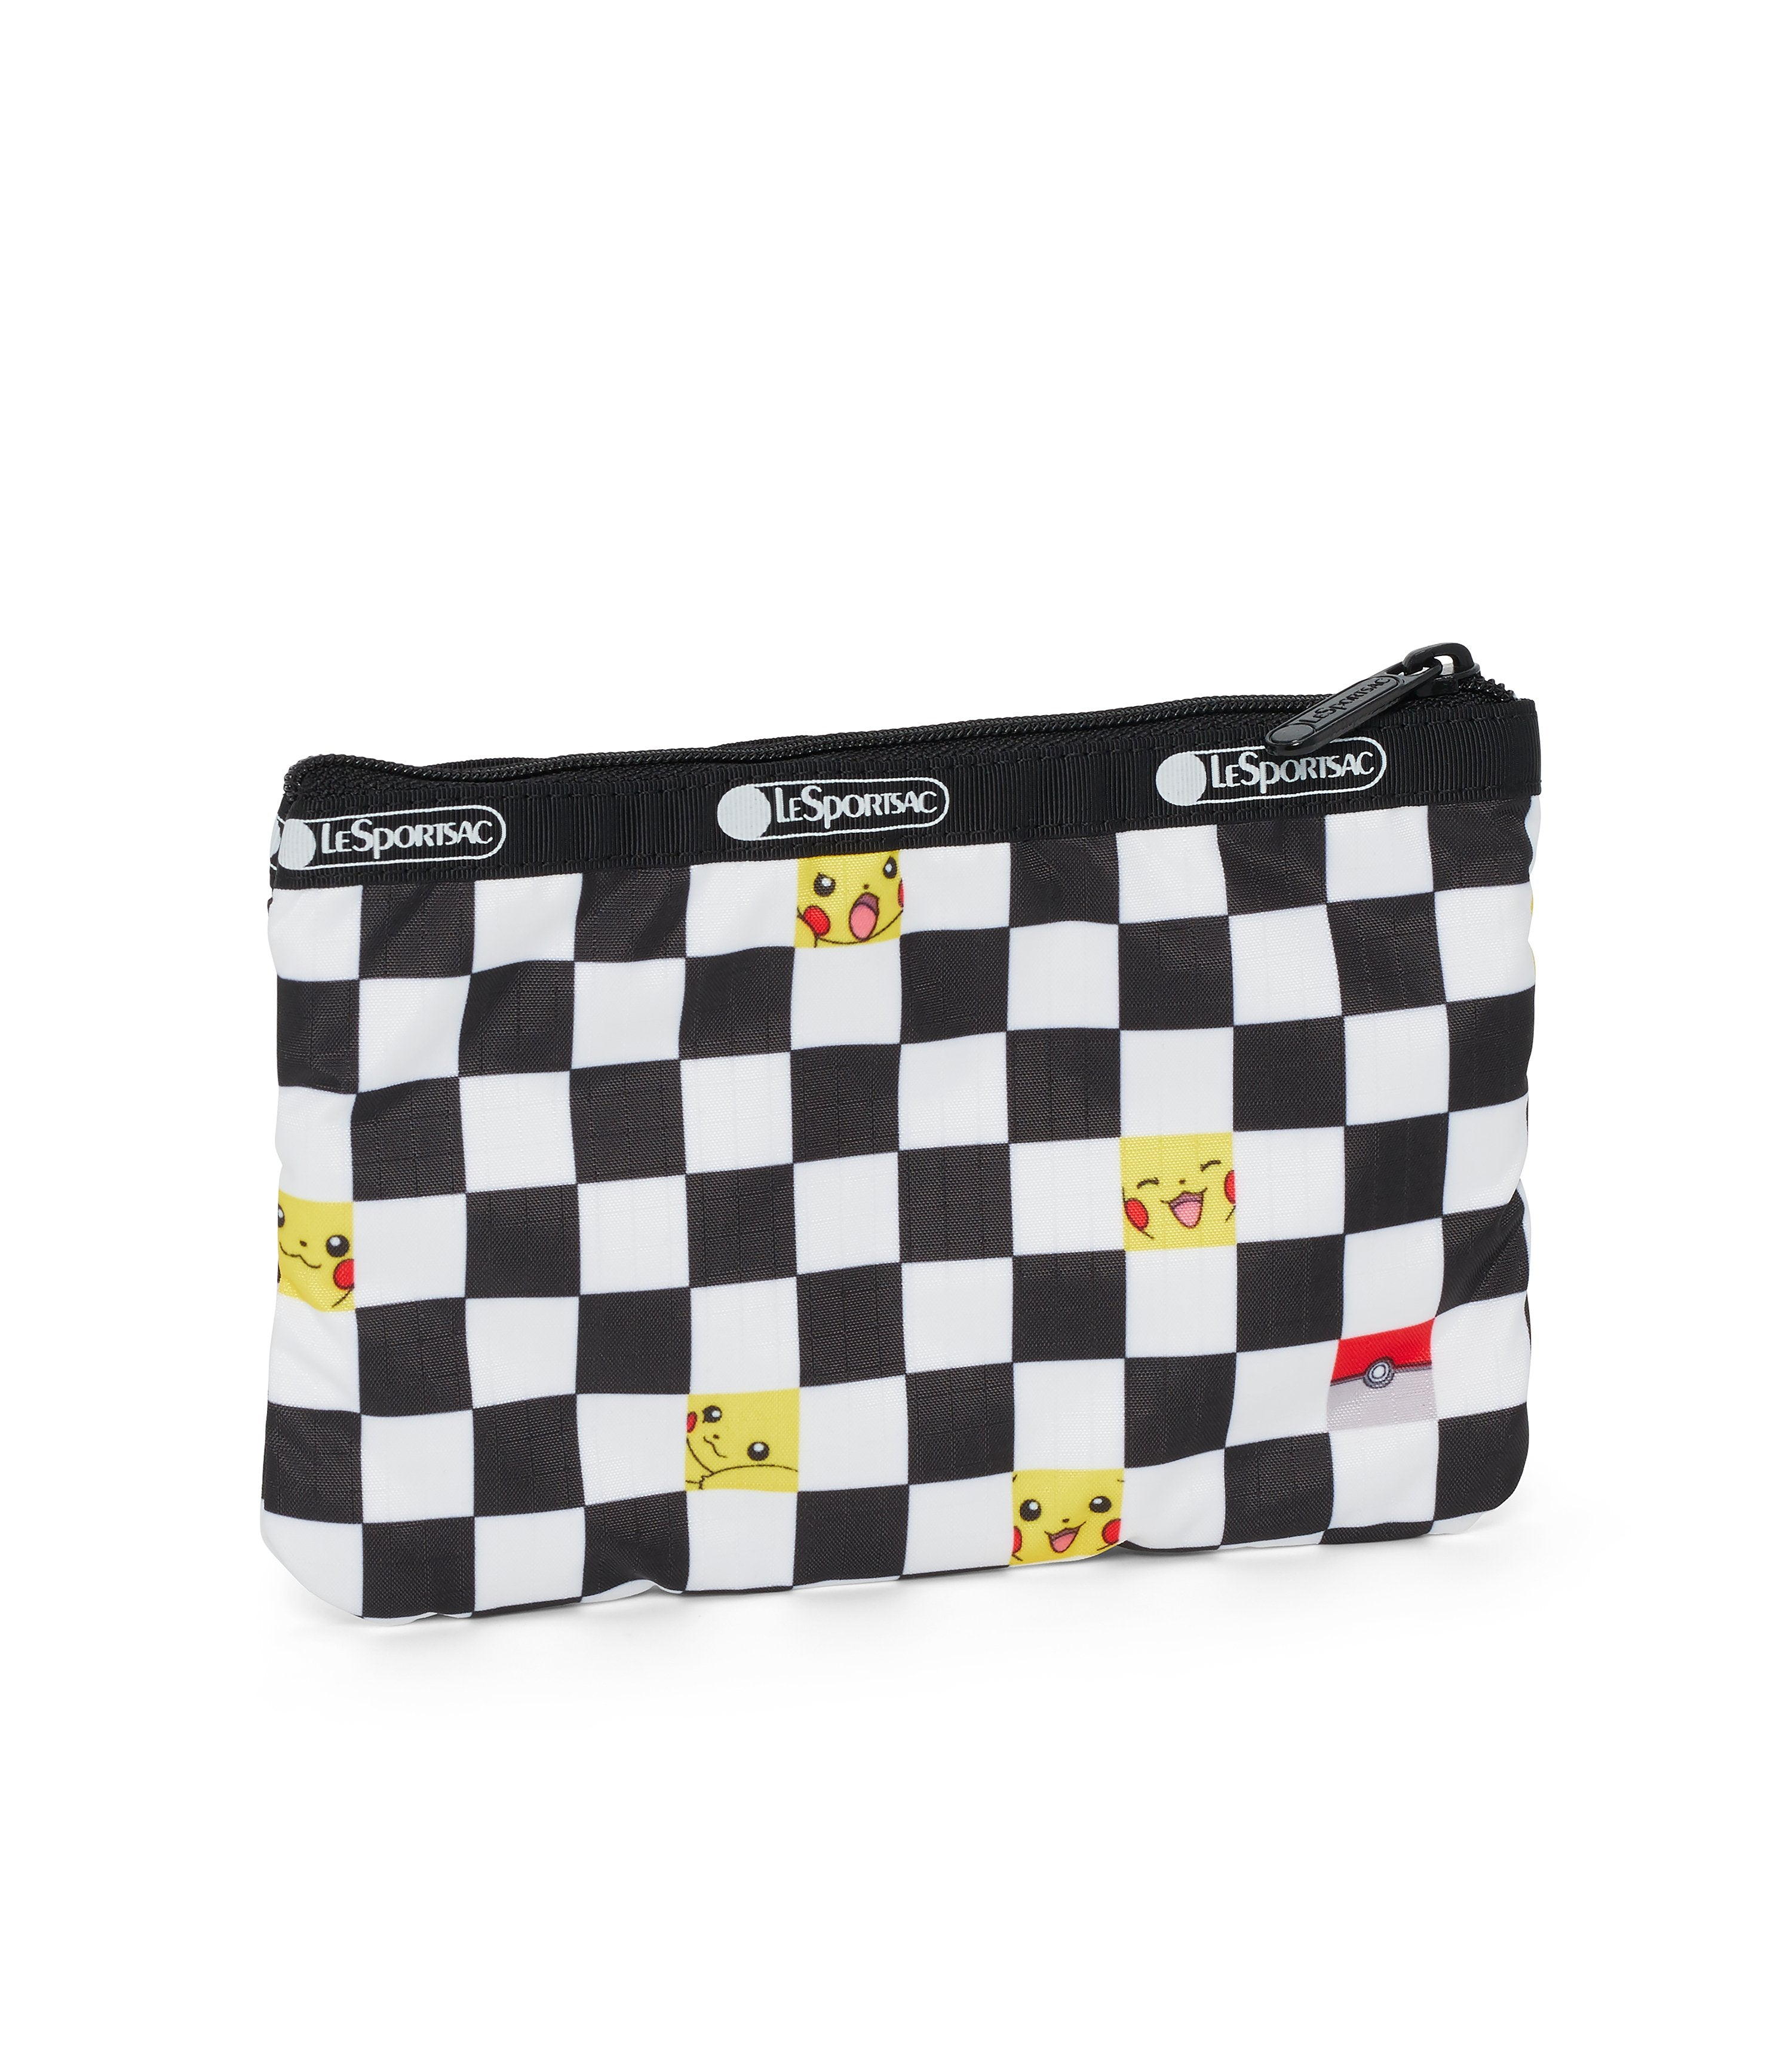 Pokémon - Special 3-Zip Cosmetic - Accessories - Pikachu Check - Back View